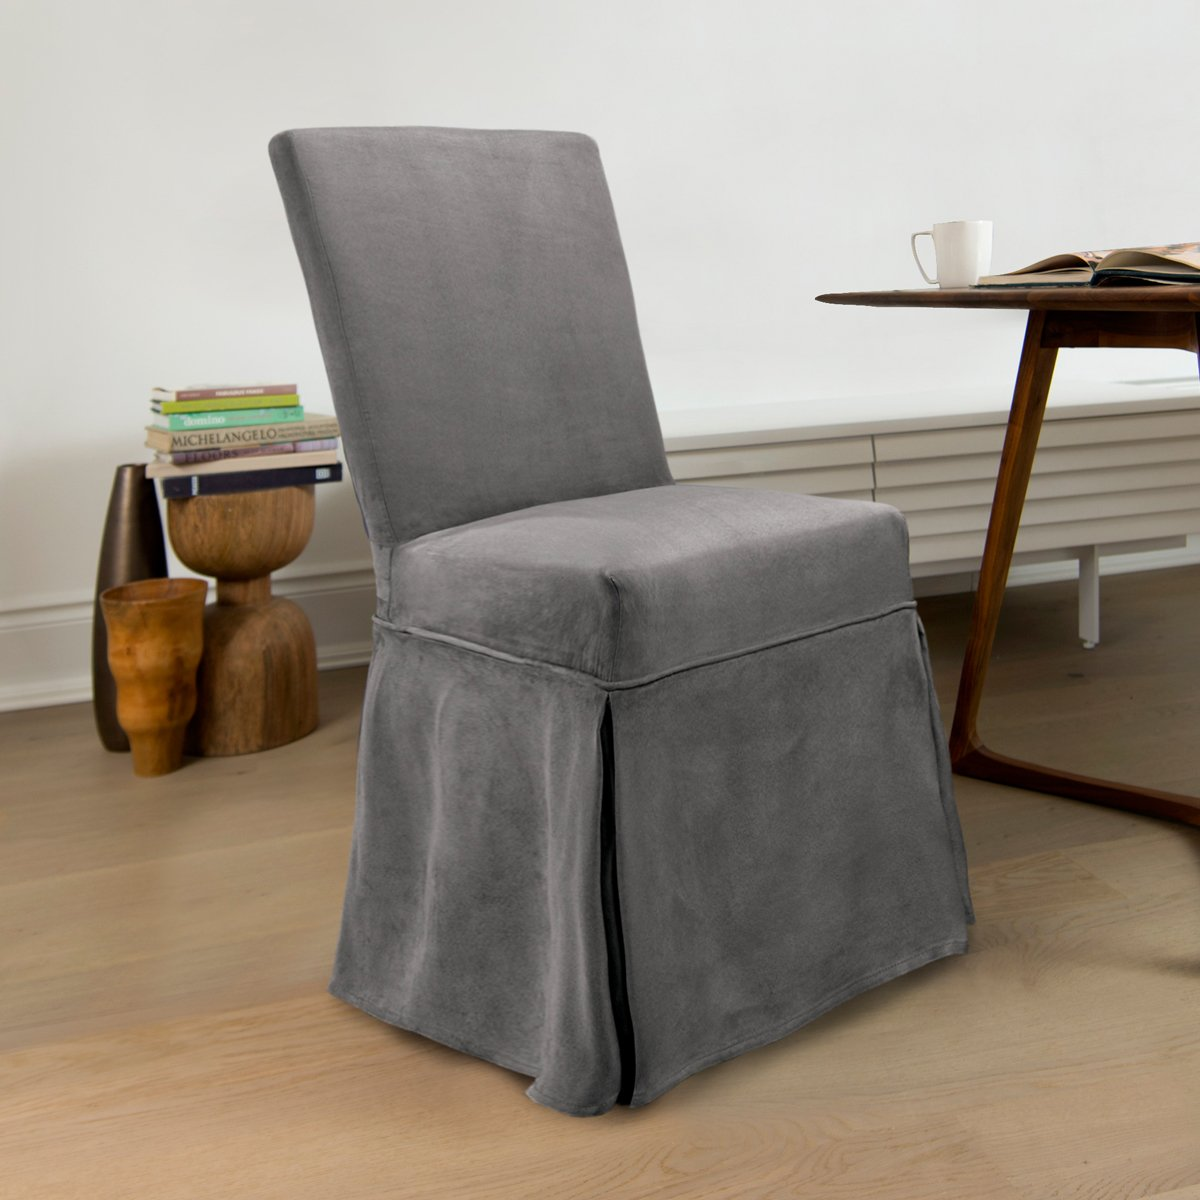 CoverWorks SIEN1941SLAT4 Sienna Slipcover with Ties in Slate Pack of 4,Slate,Parson's Chair by CoverWorks